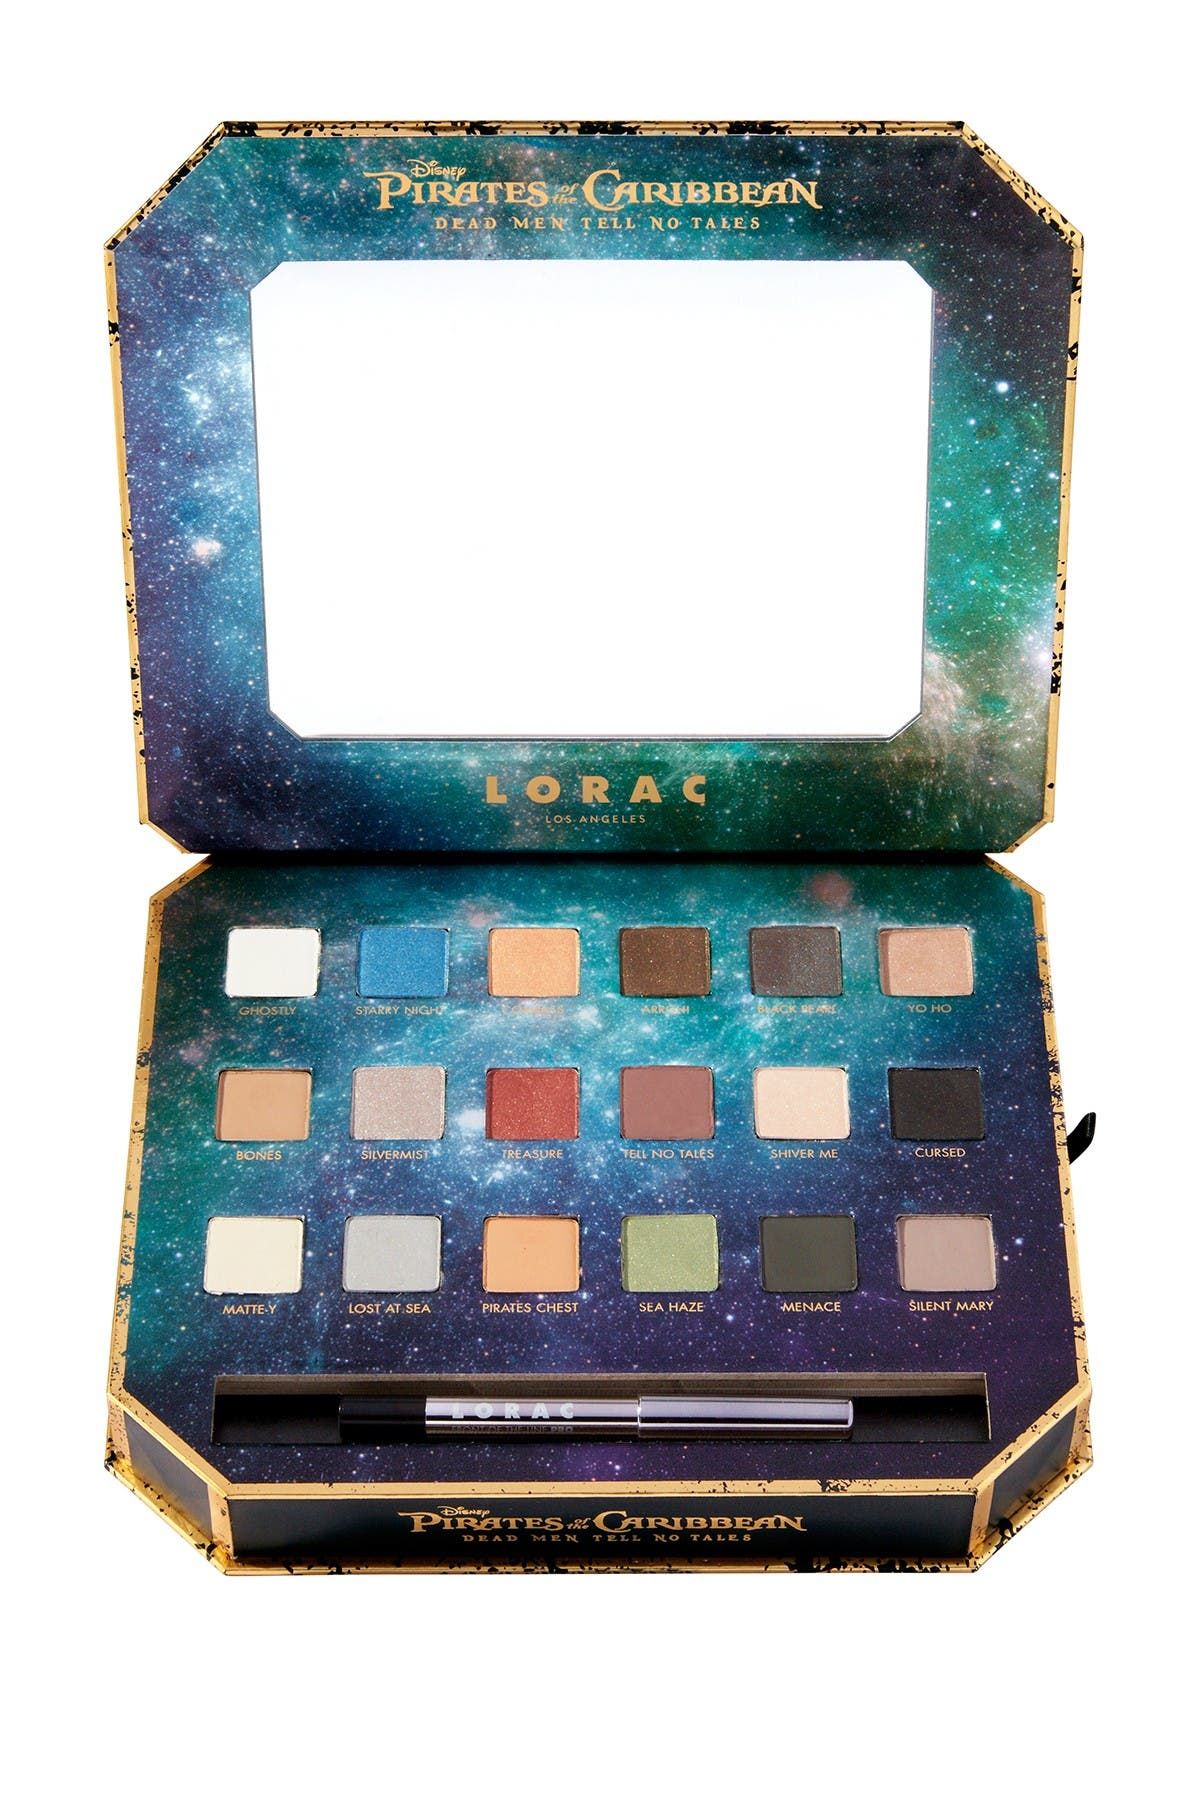 Image of LORAC Pirates of the Caribbean Eyeshadow Palette